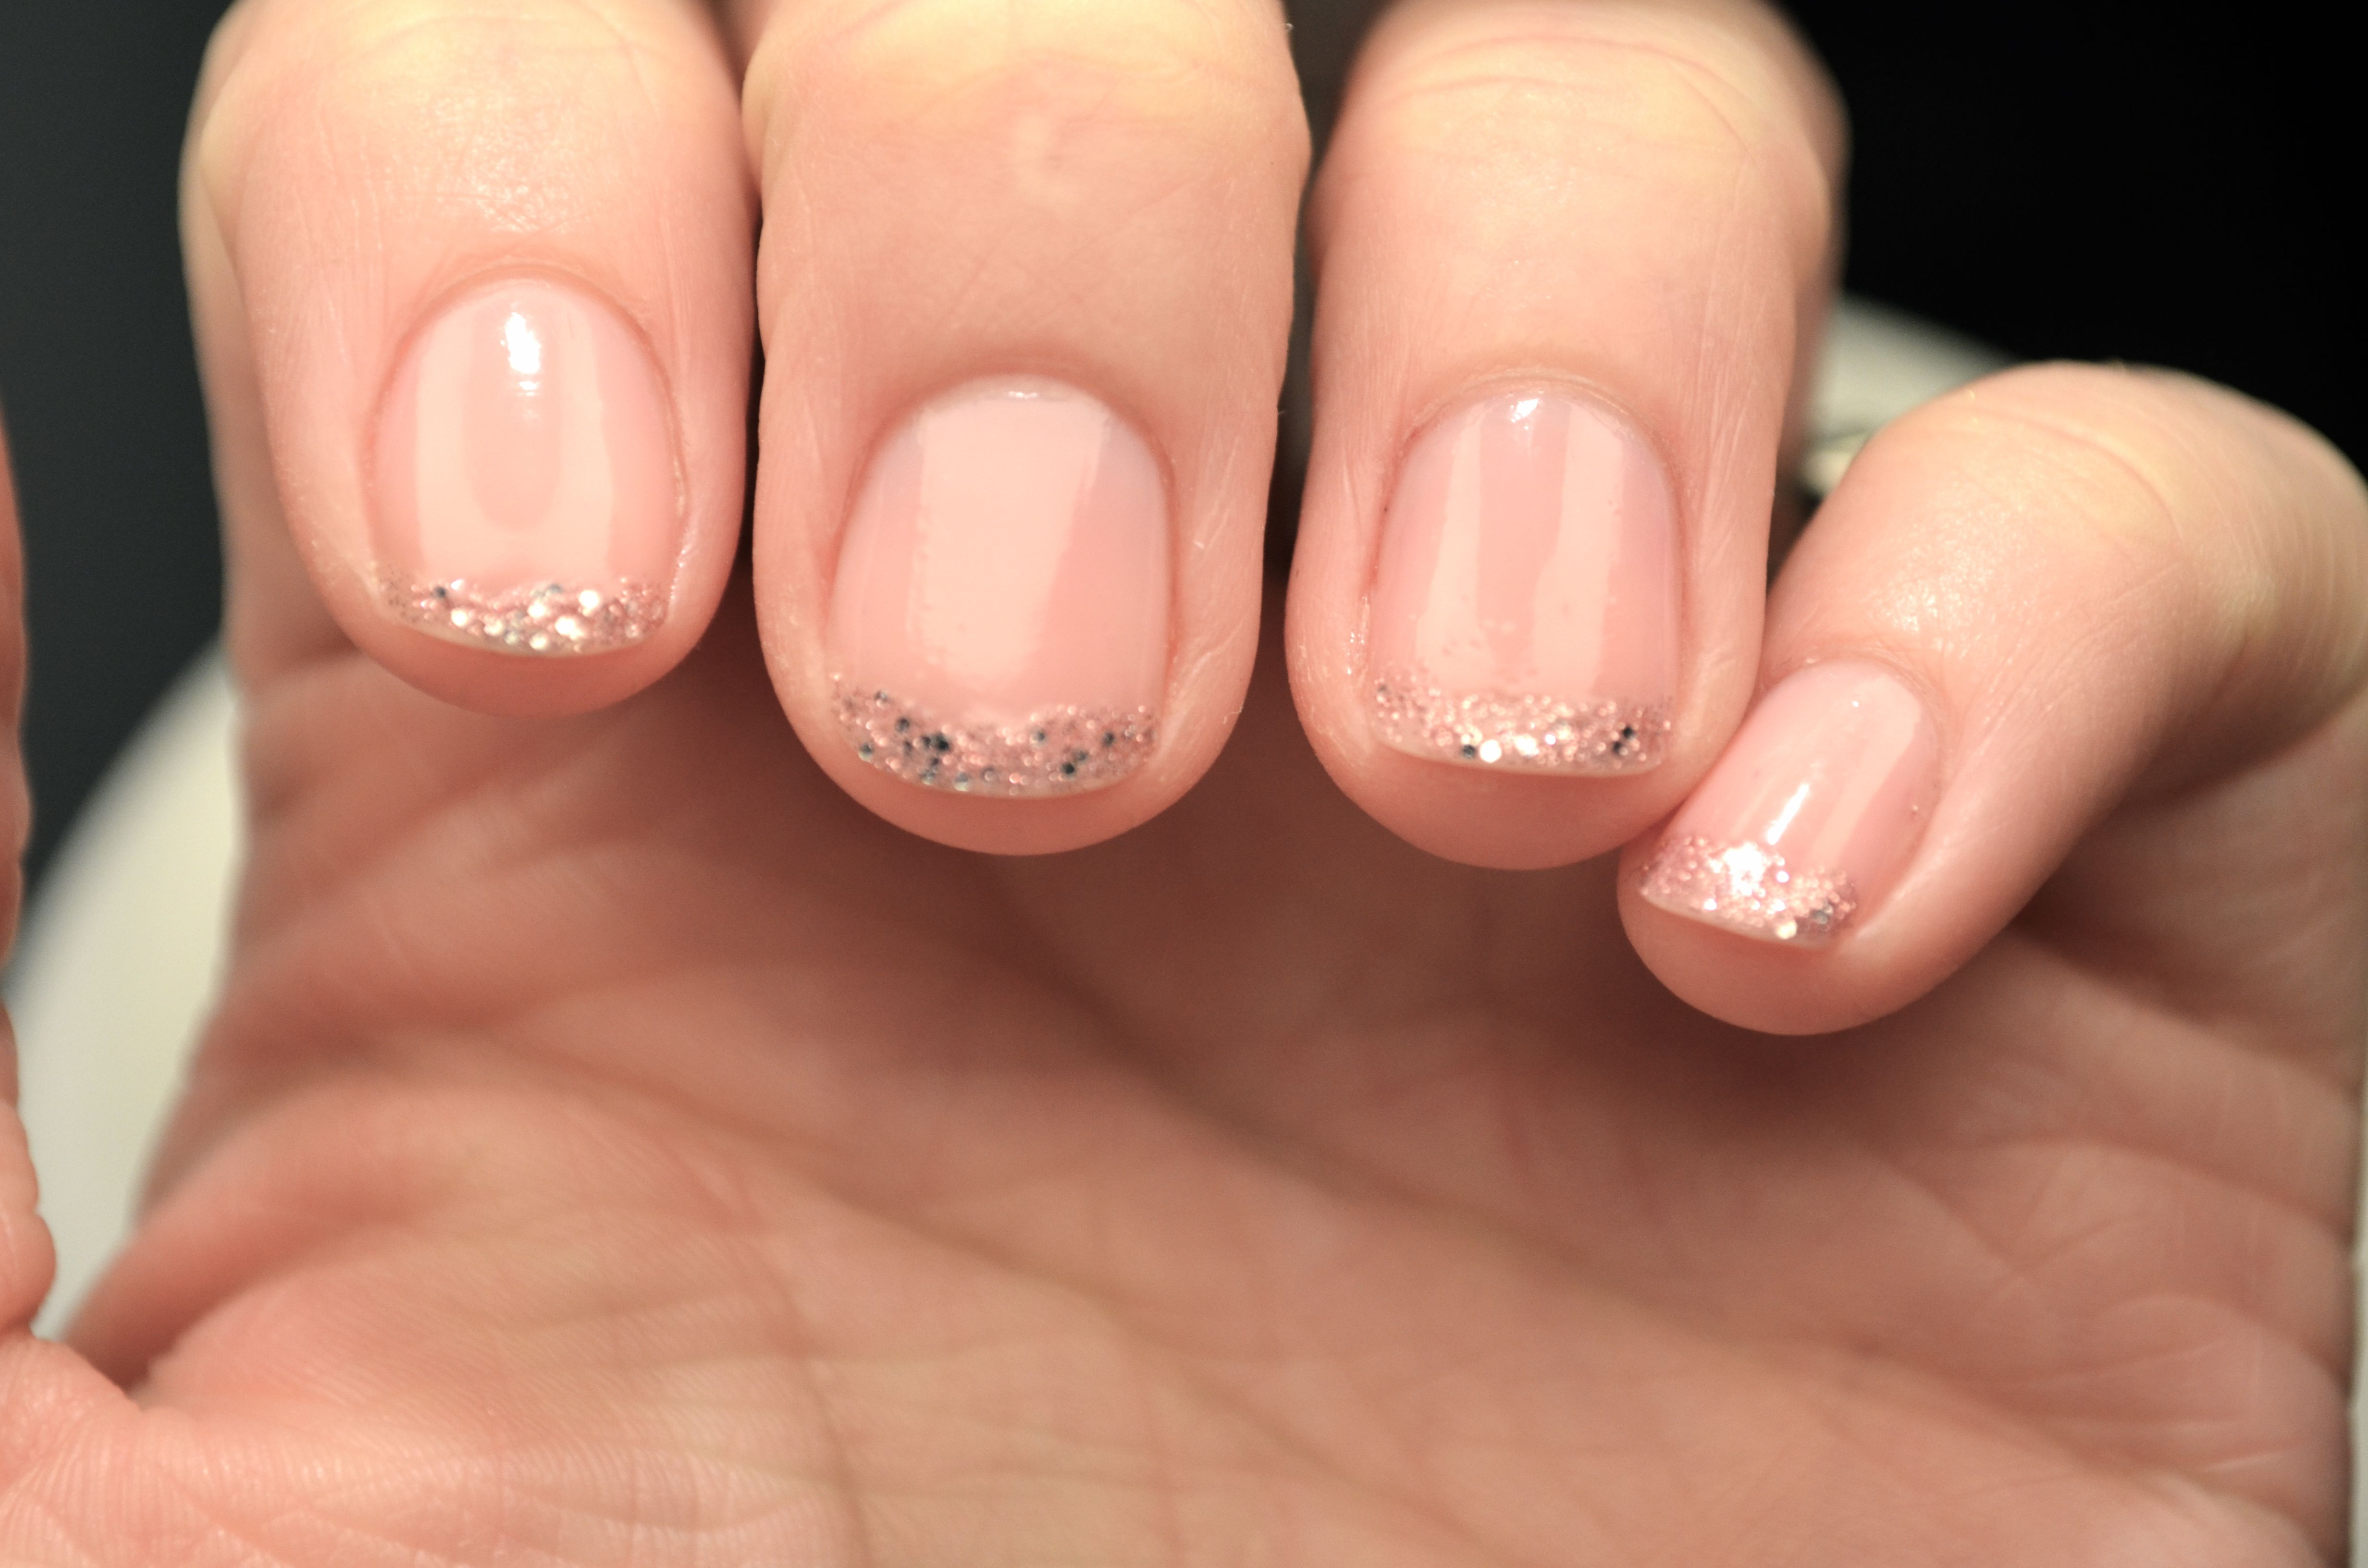 wedding nails - on just the ring finger; tiny line of glitter under ...